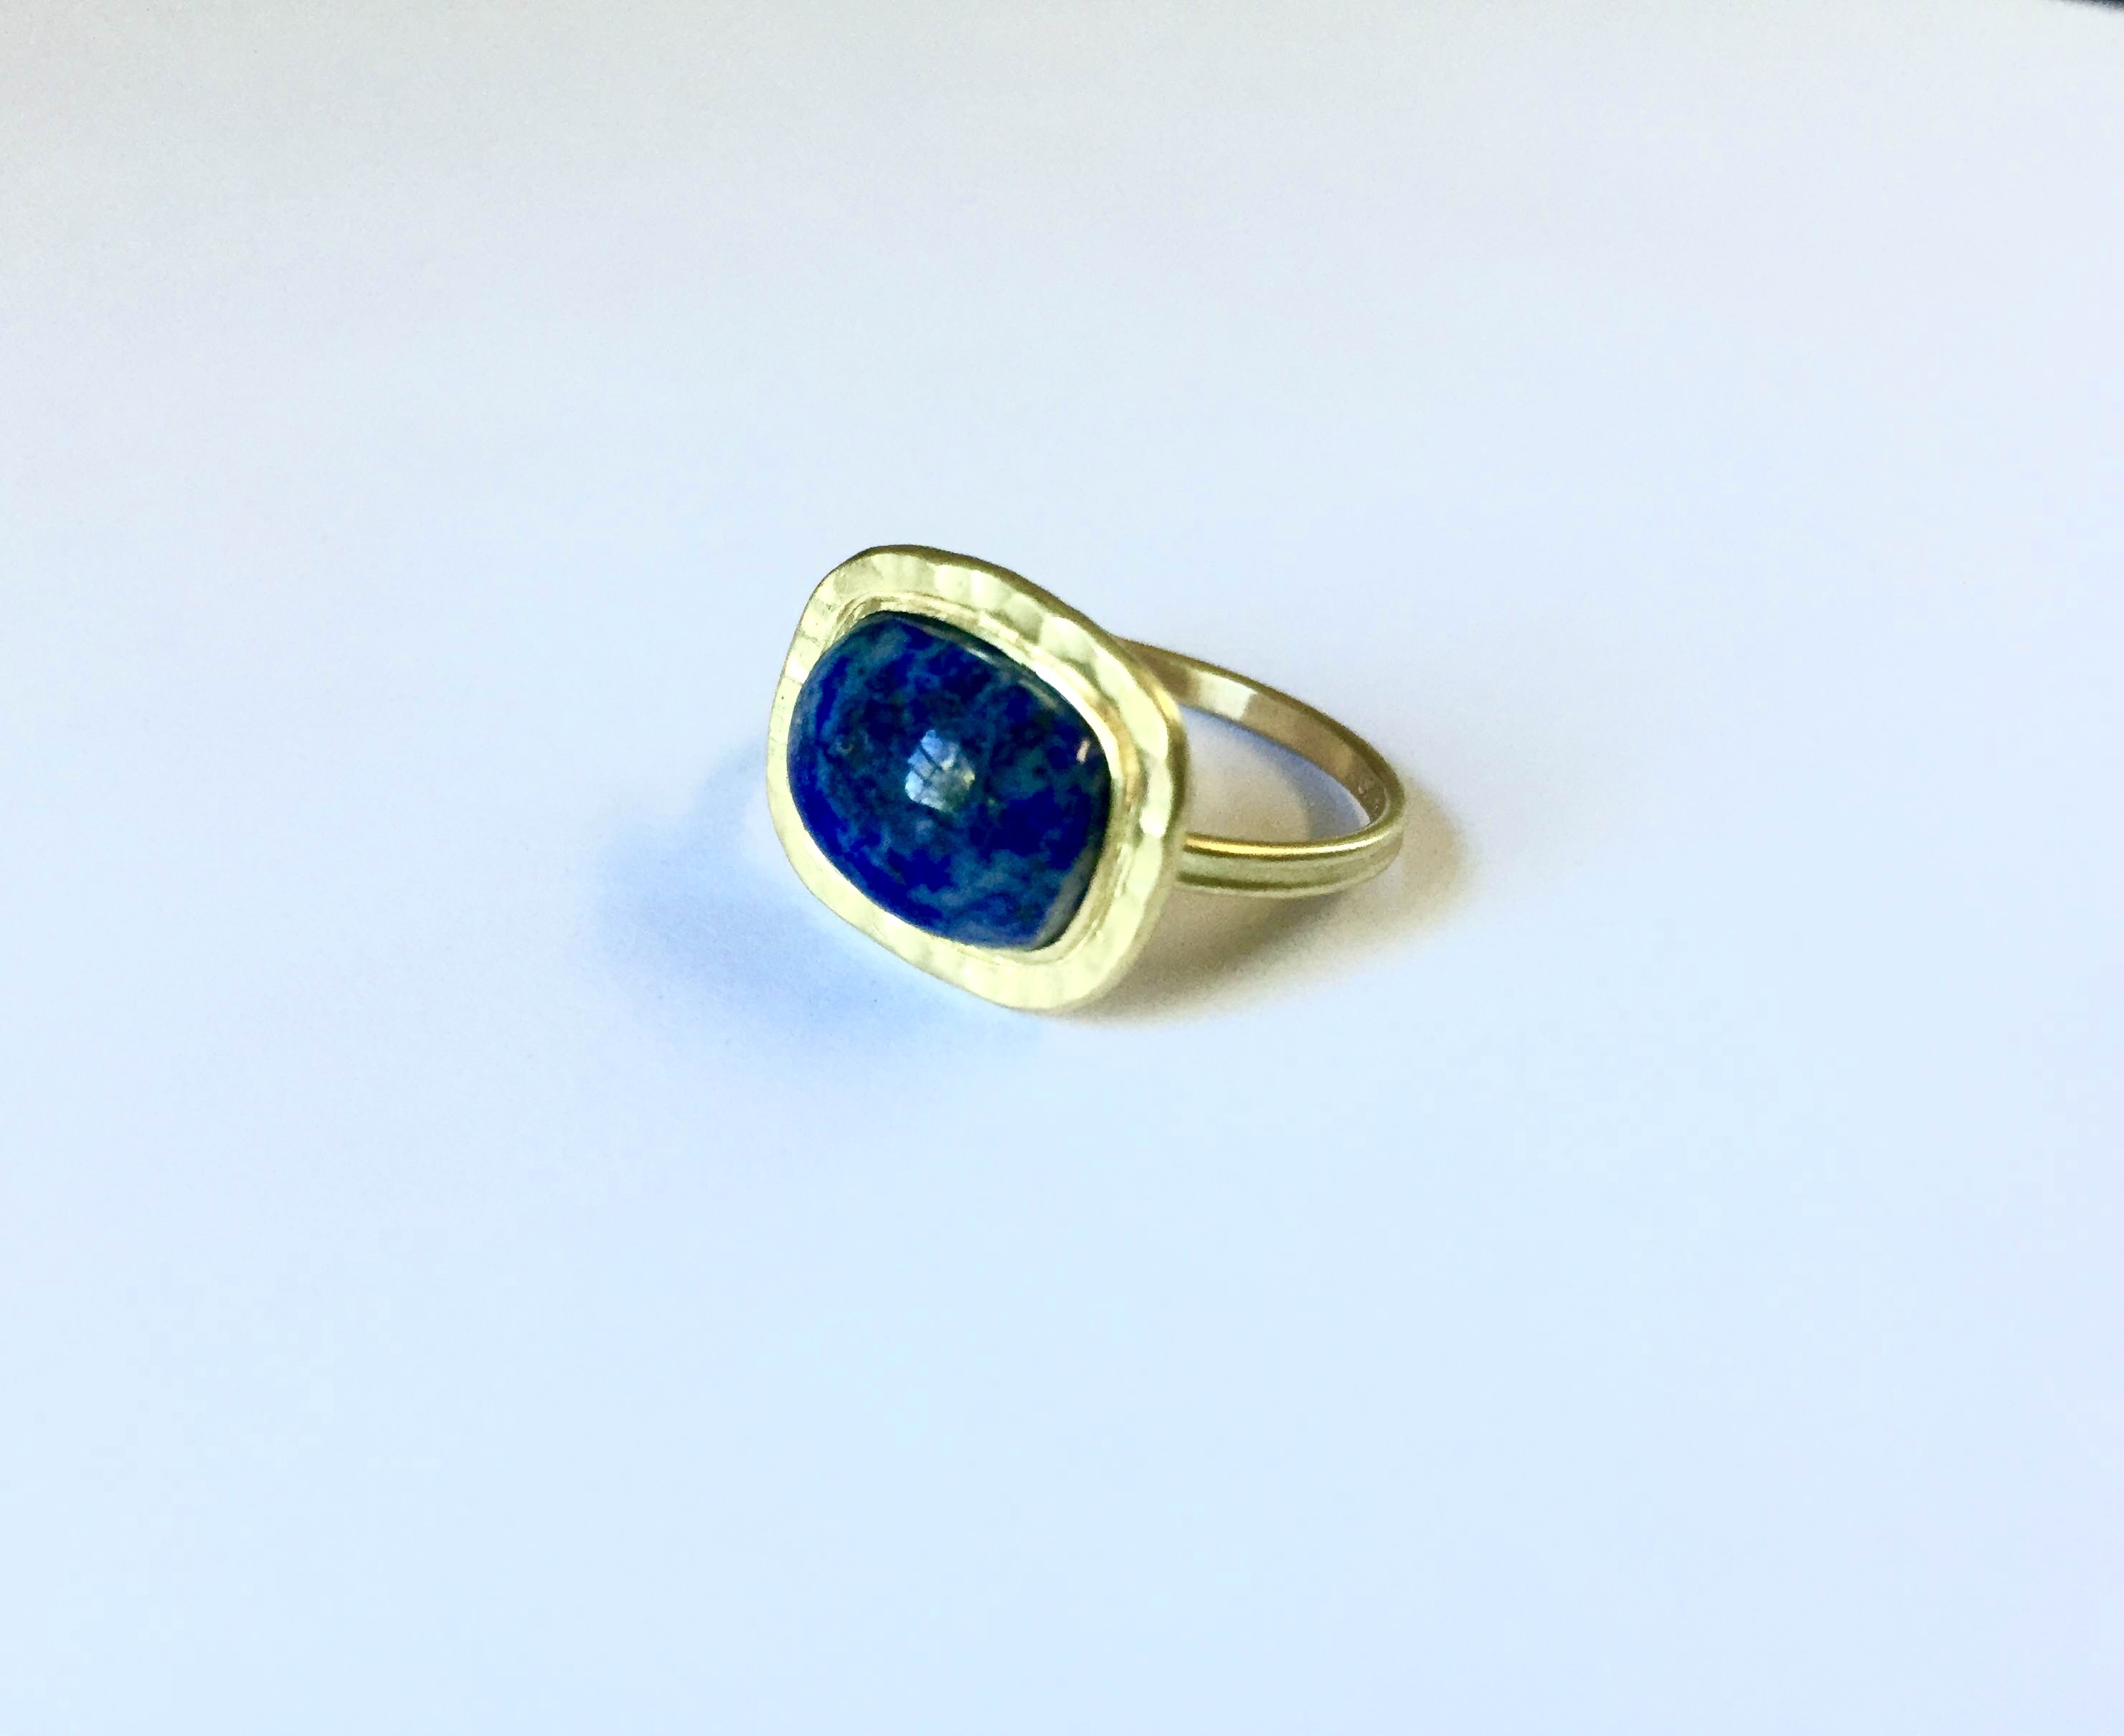 Ancient-Style Gold Ring with Re-cut Lapis